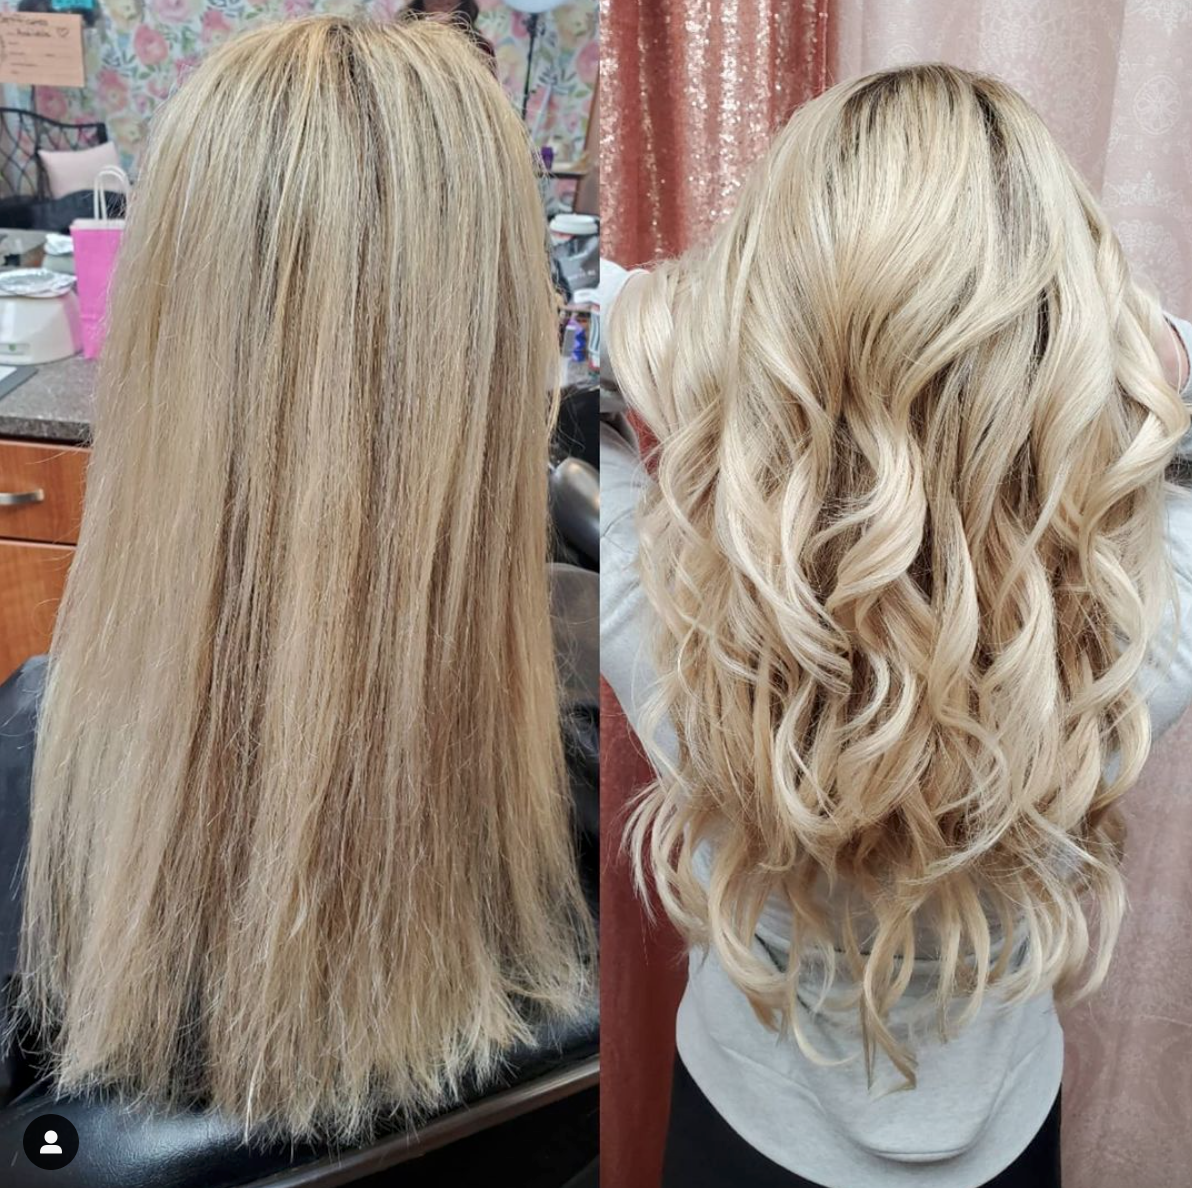 Hairlay hand-tied before after